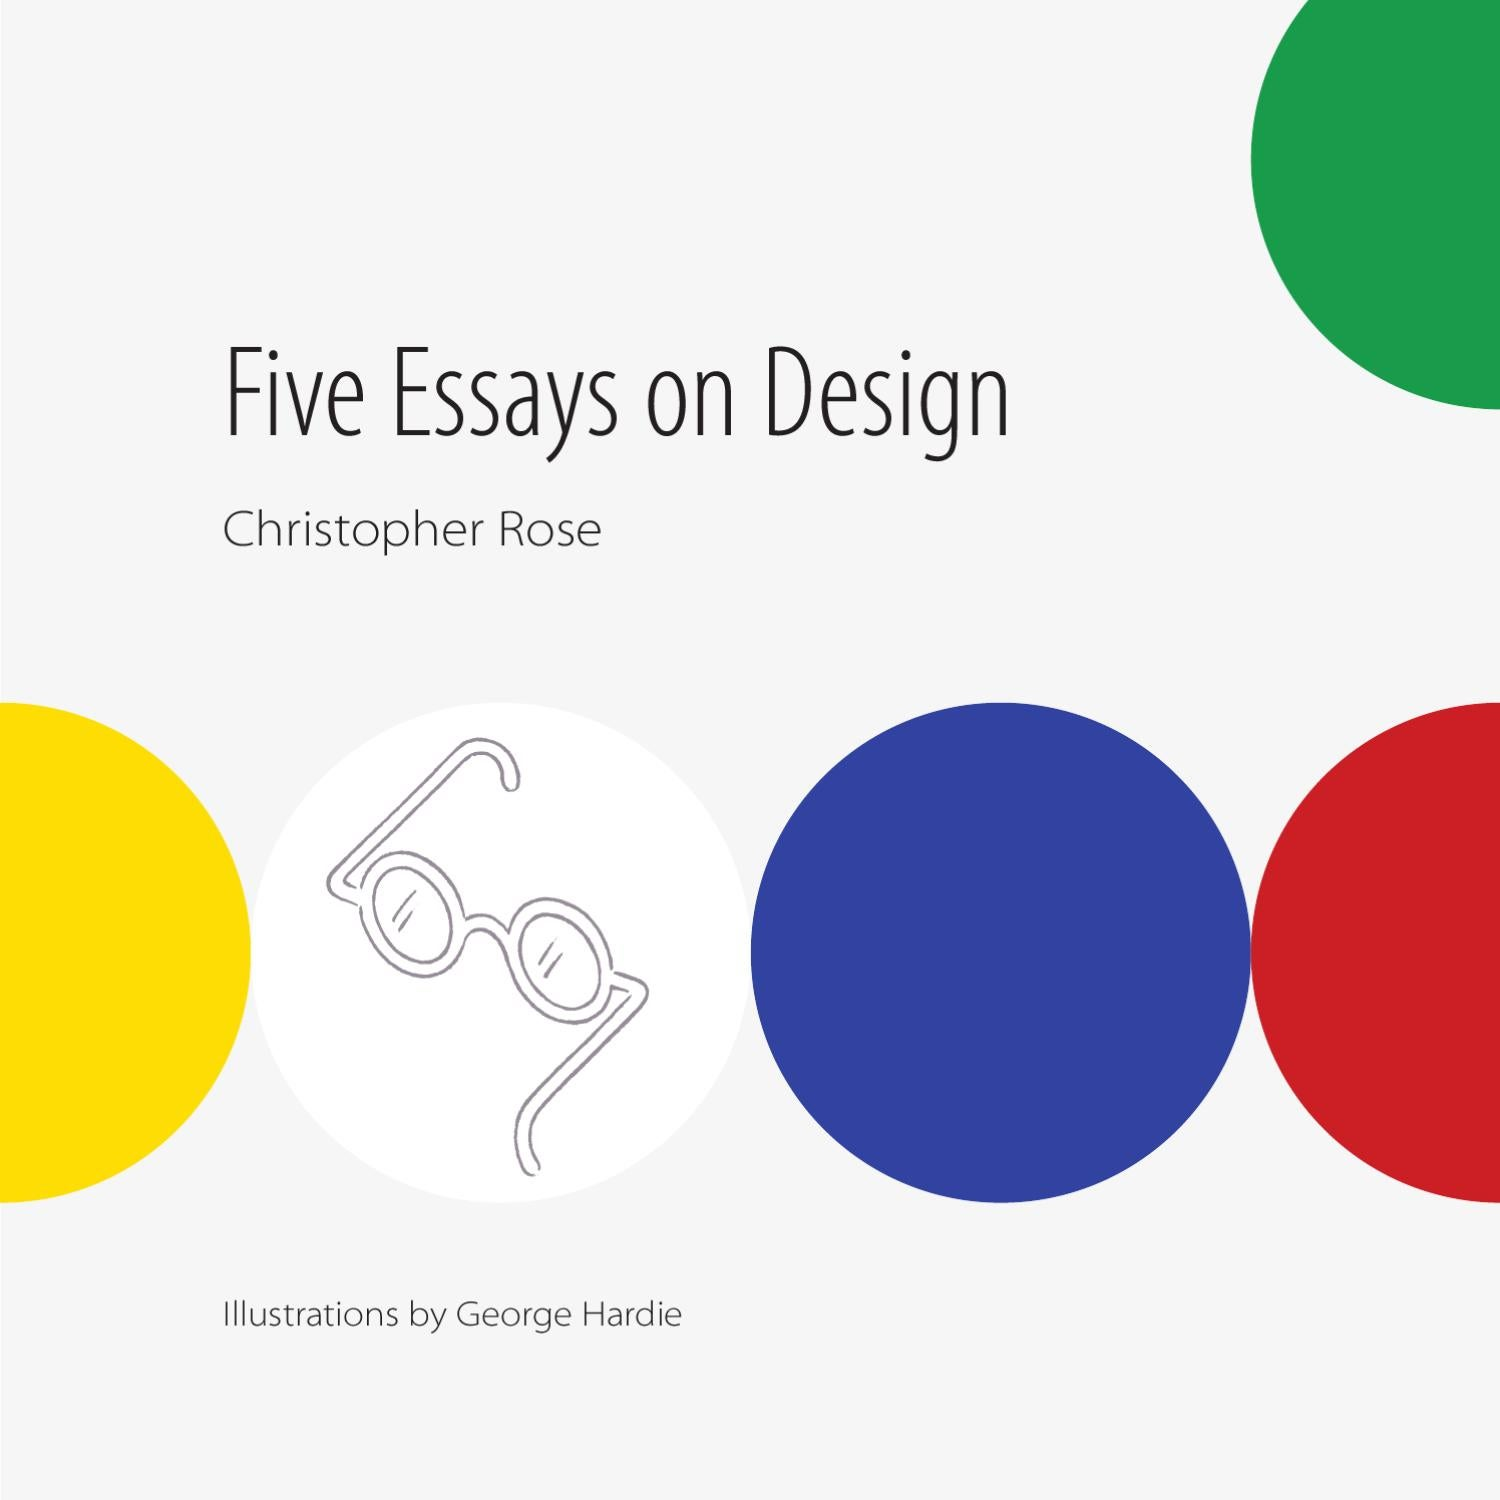 79 short essays on design by michael bierut Tp-captionmedium_grey { position:absolute color:#fff text-shadow:0px 2px 5px rgba(0, 0, 0, 05) font-weight:700 font-size:20px line-height:20px font-family:arial padding.